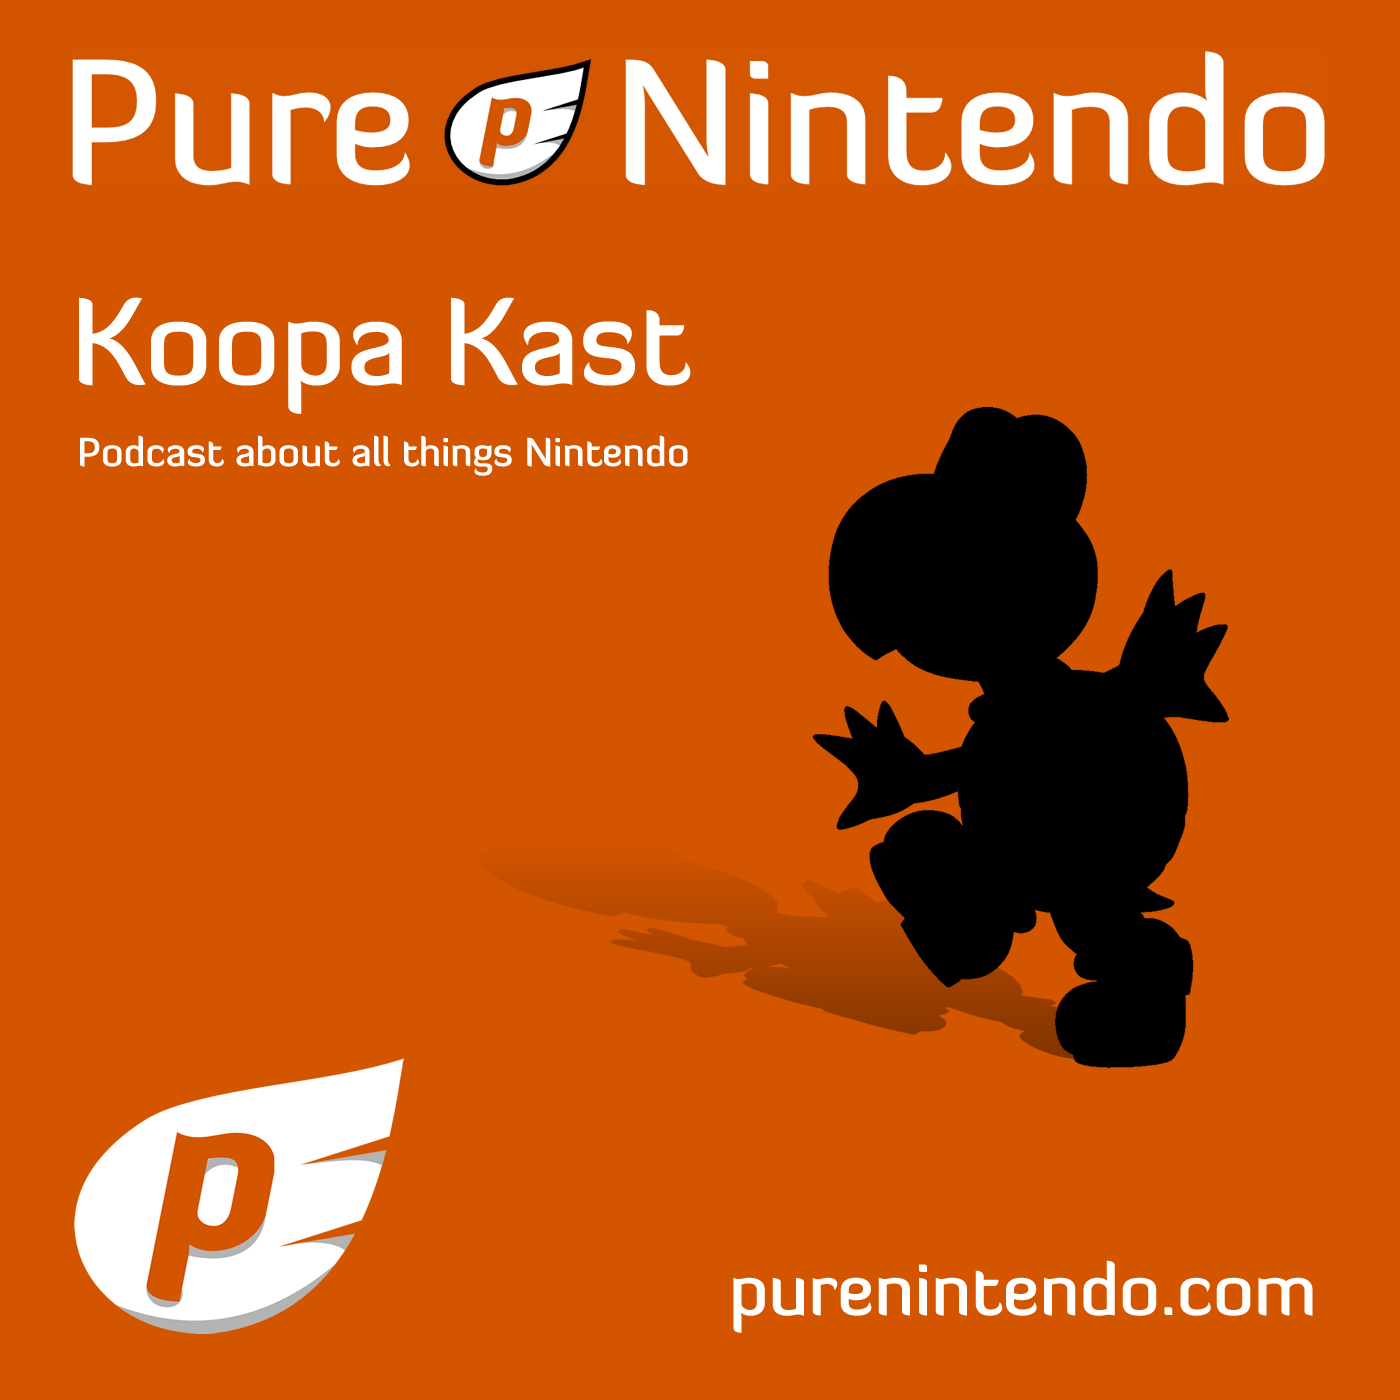 The Koopa Kast is now on iTunes!